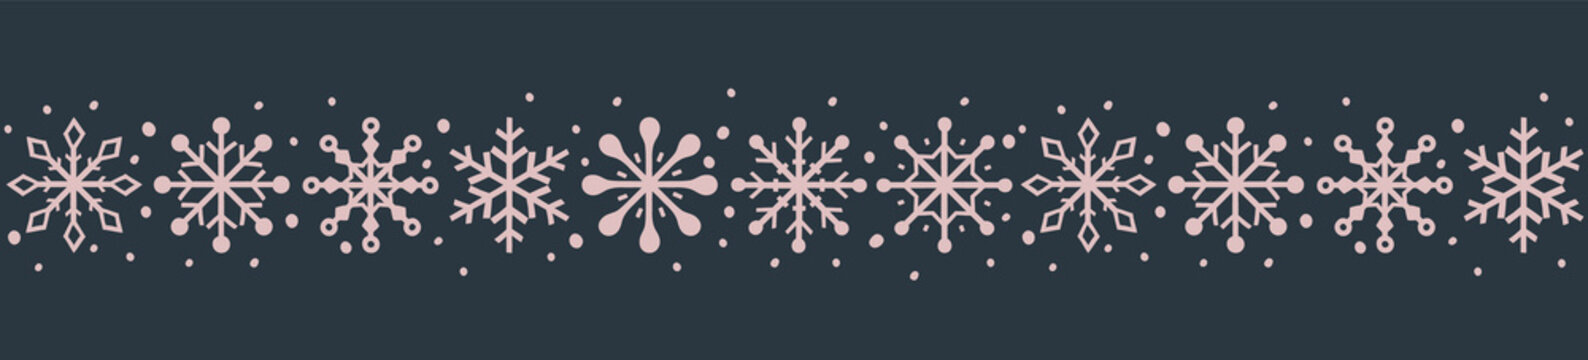 Beautiful Christmas banner with festive snowflakes. Xmas ornament. Vector